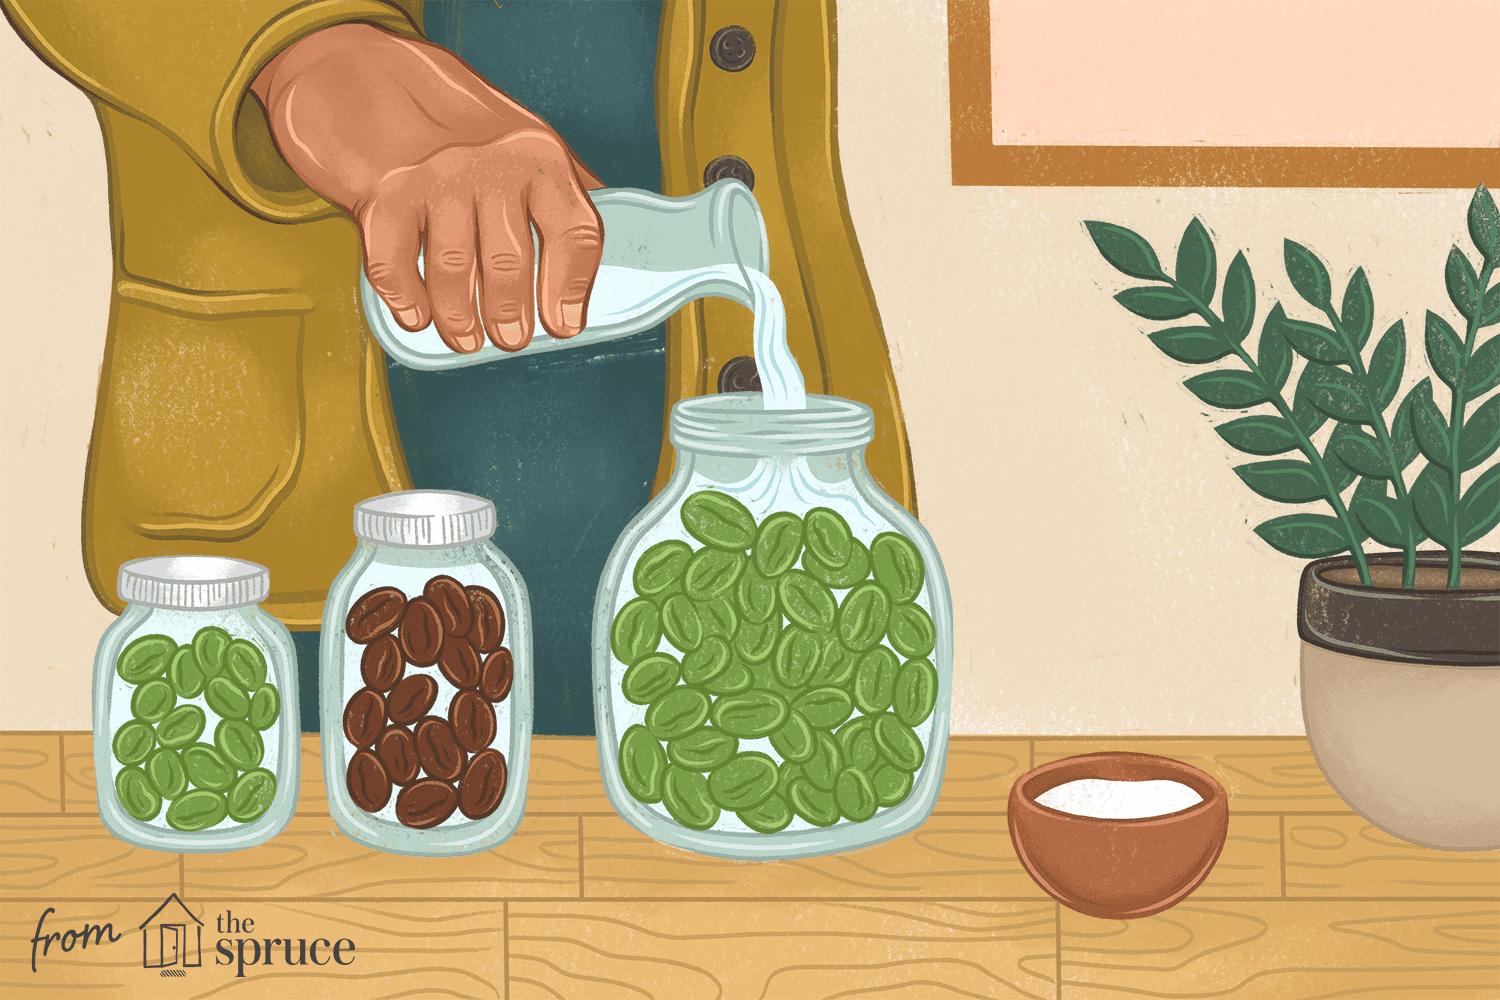 illustration of how to cure olives